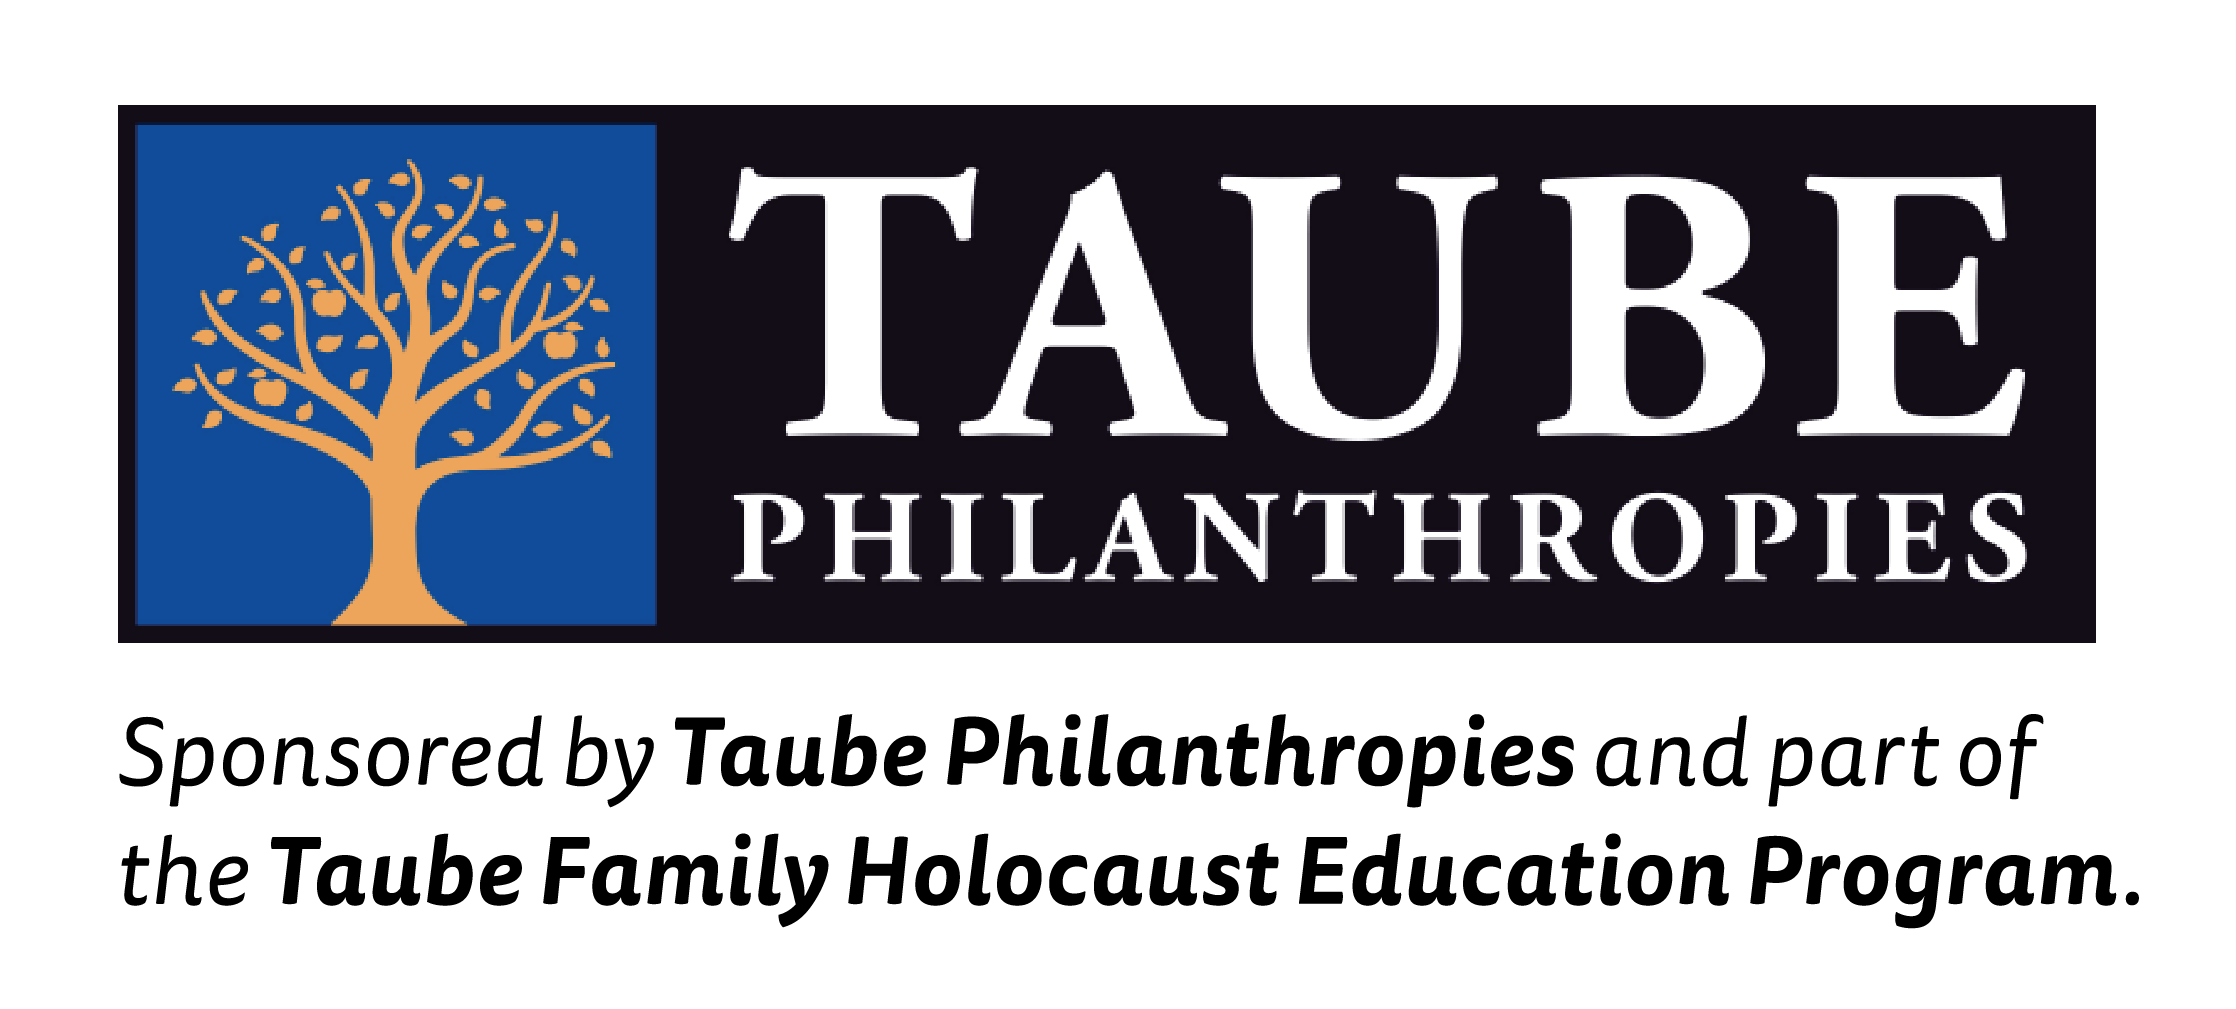 Sponsored by Taube Philanthropies and part of the Taube Family Holocaust Education Program.